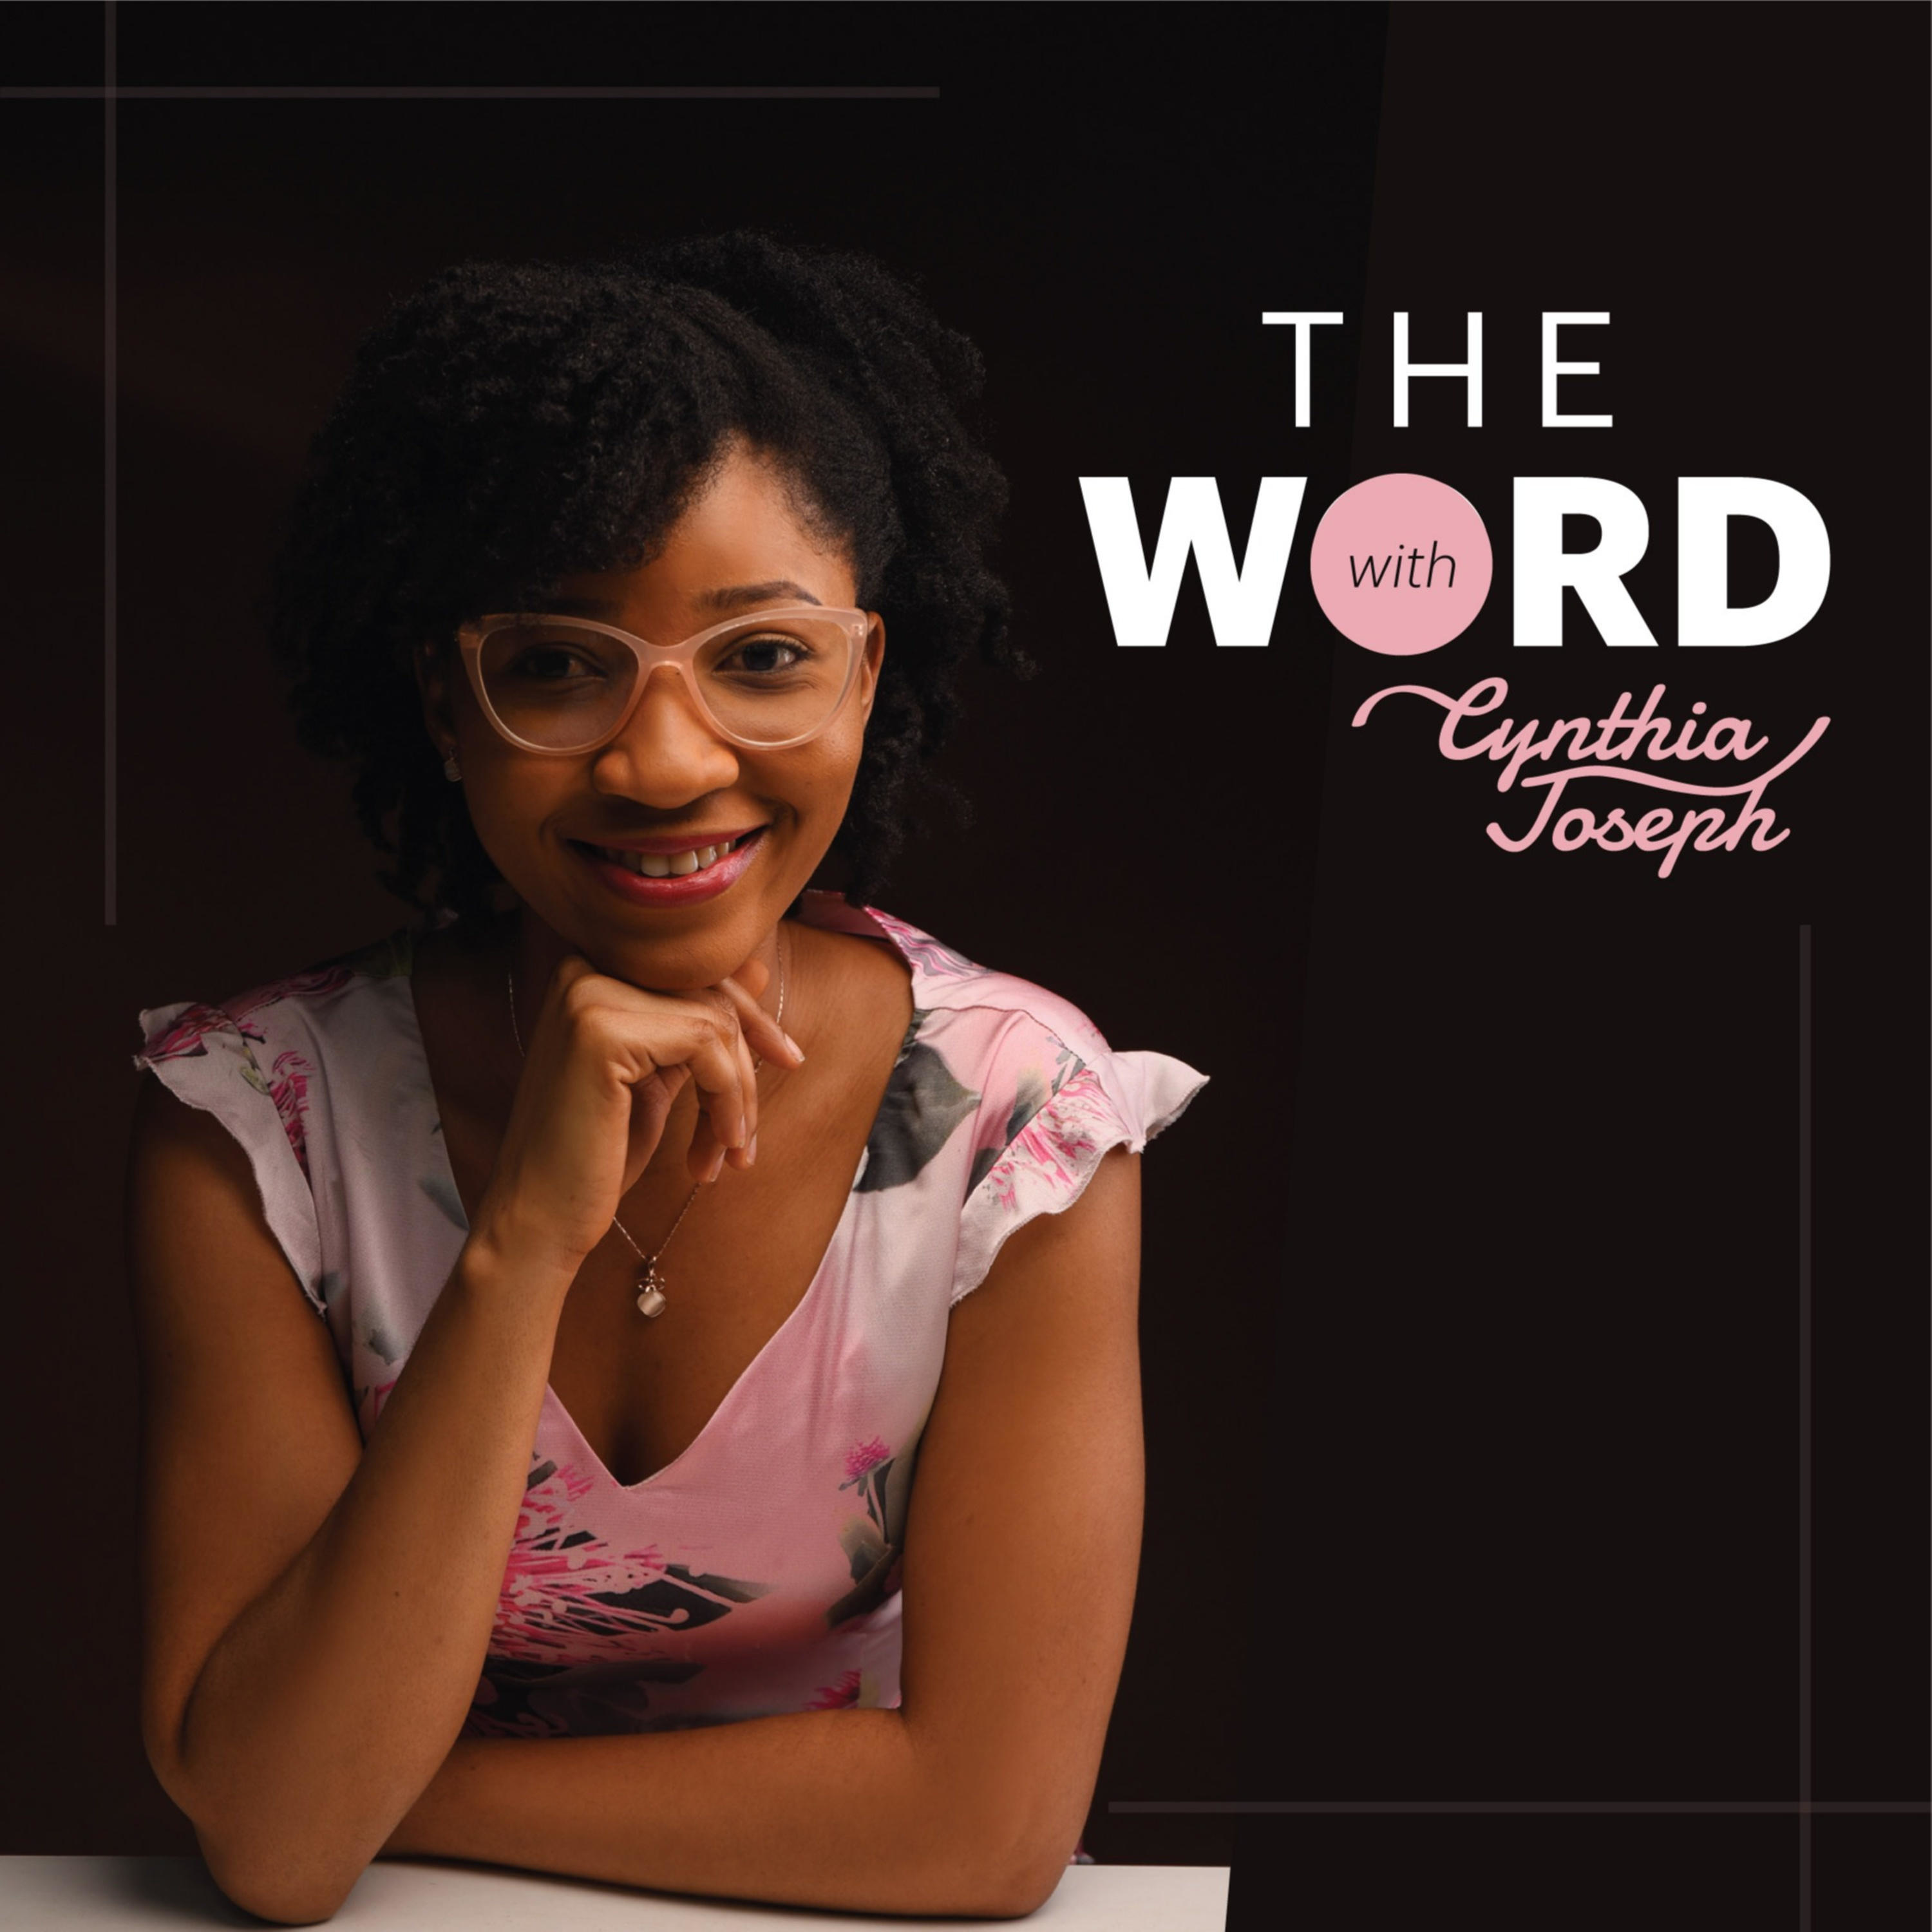 The Word with Cynthia Joseph